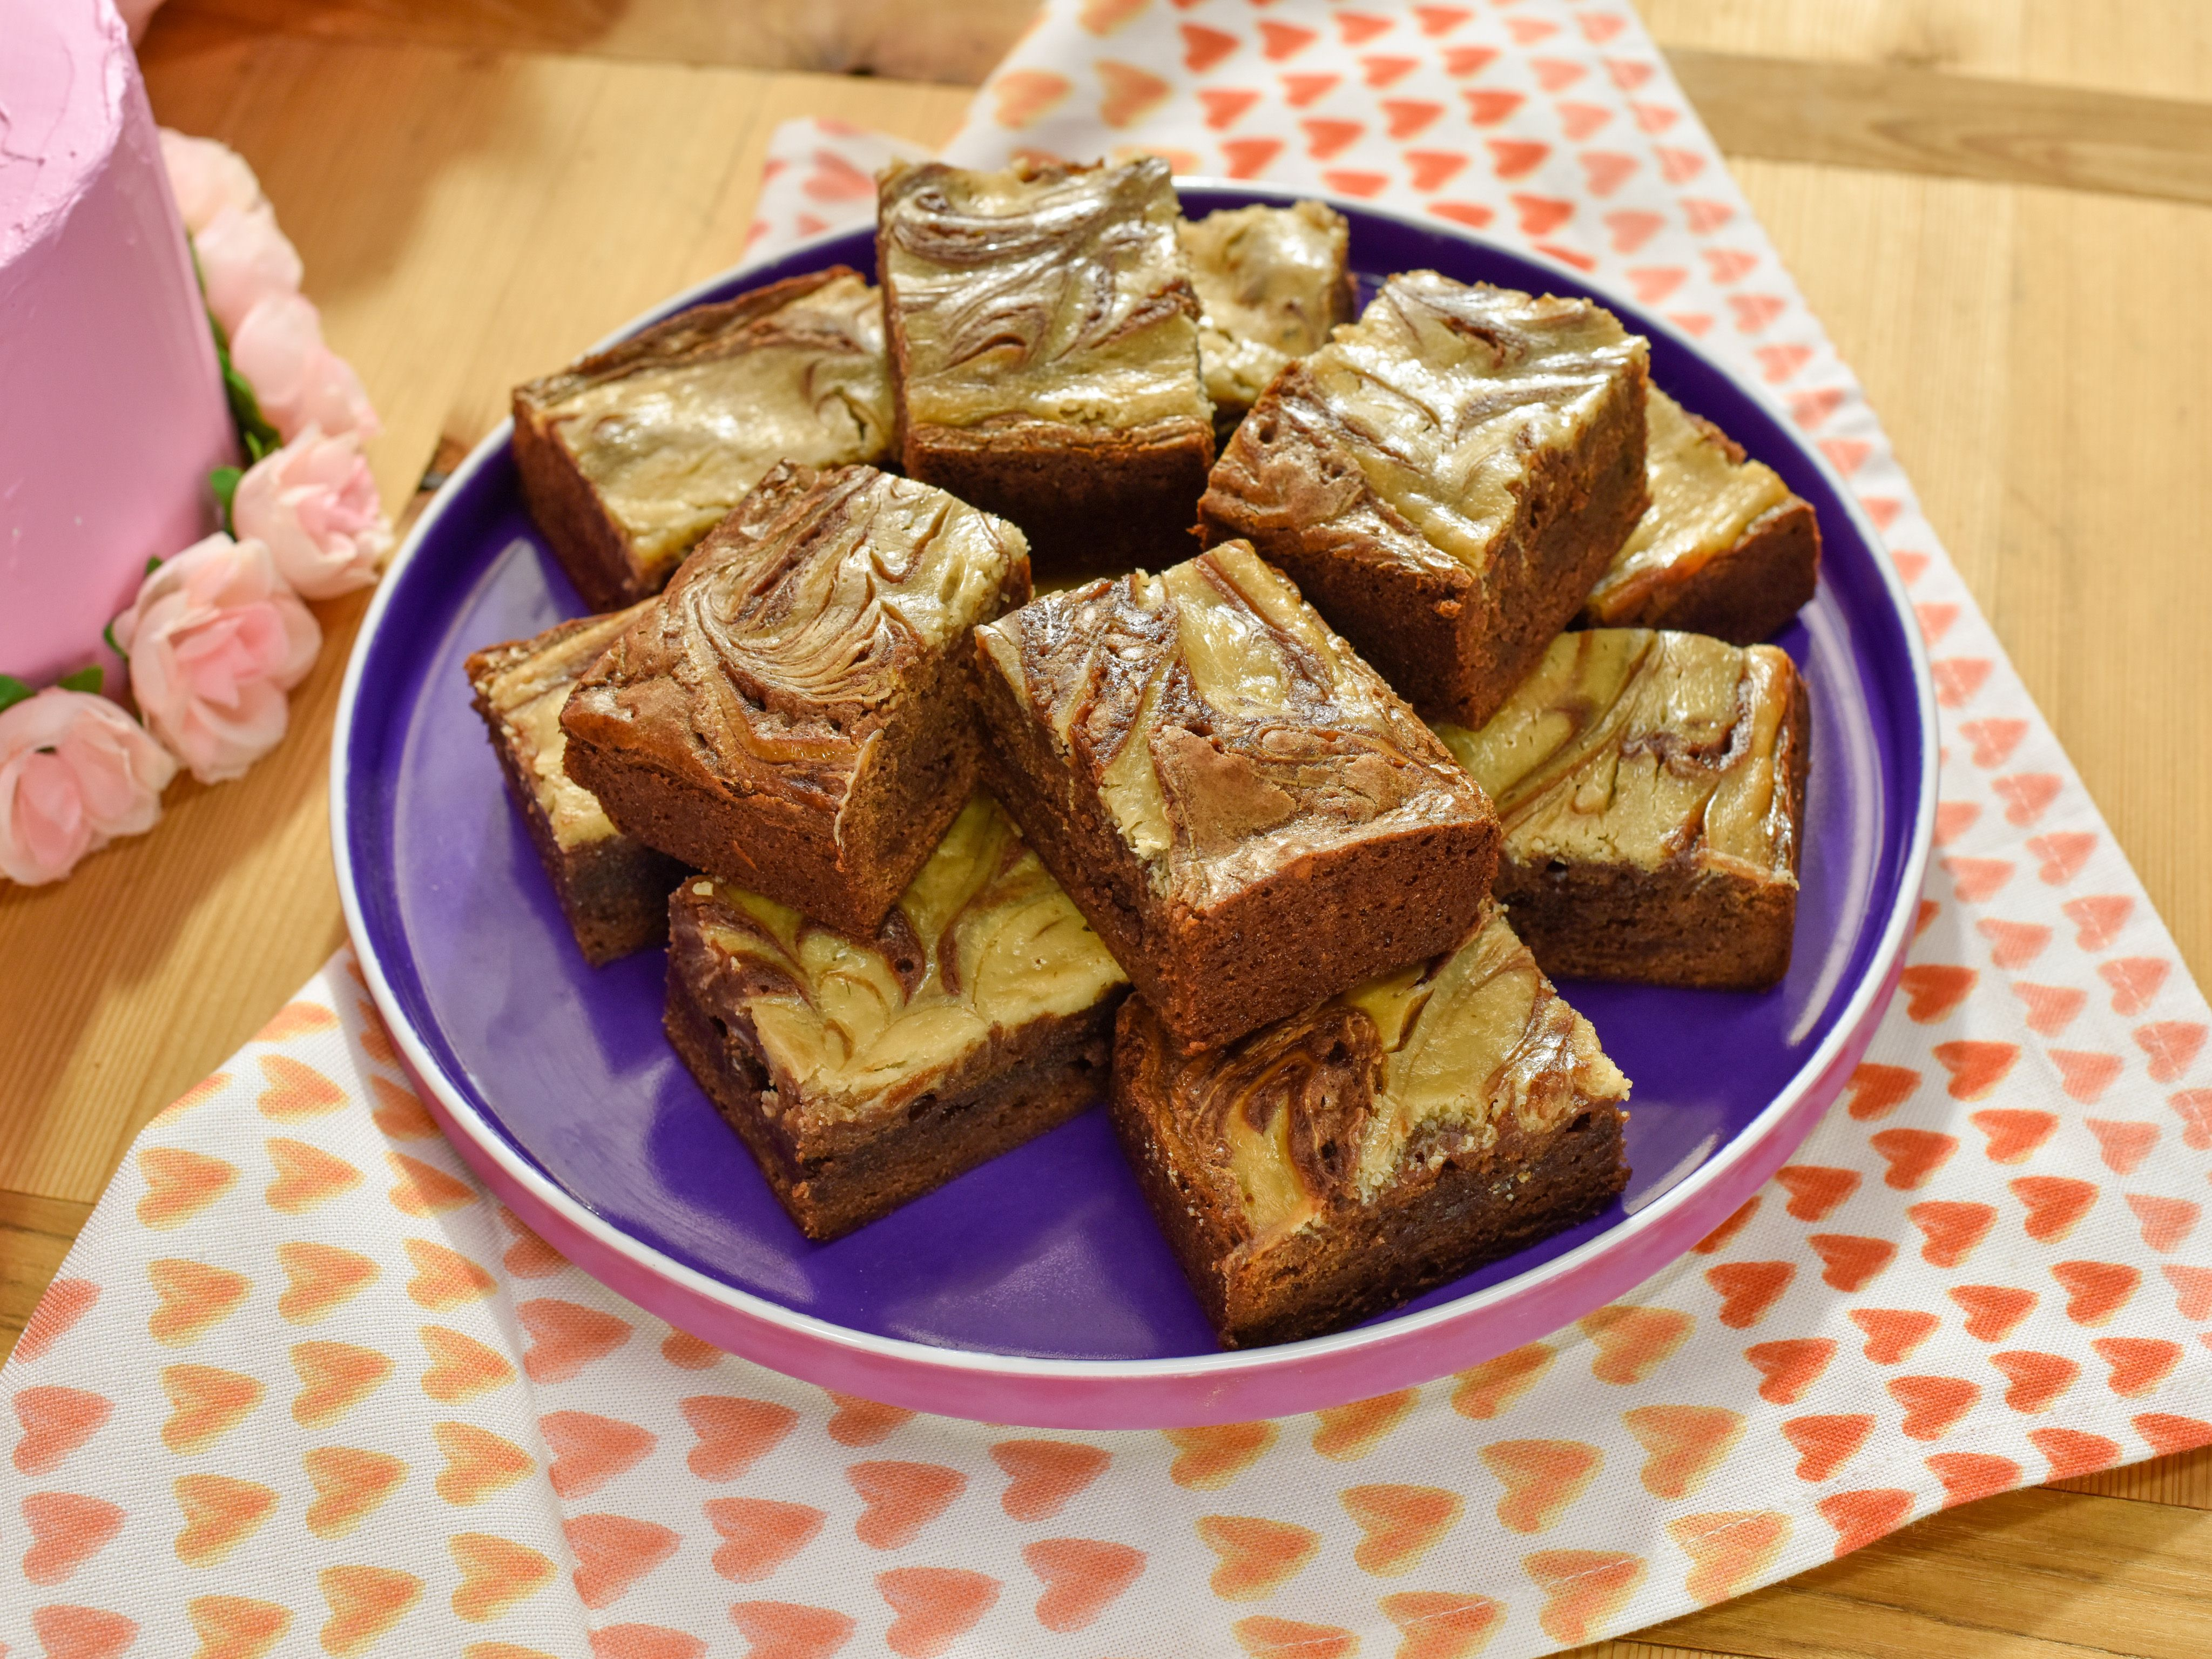 Sunny S Sour Cream Swirl Brownies Recipe Food Network Recipes Delicious Desserts Swirl Brownies